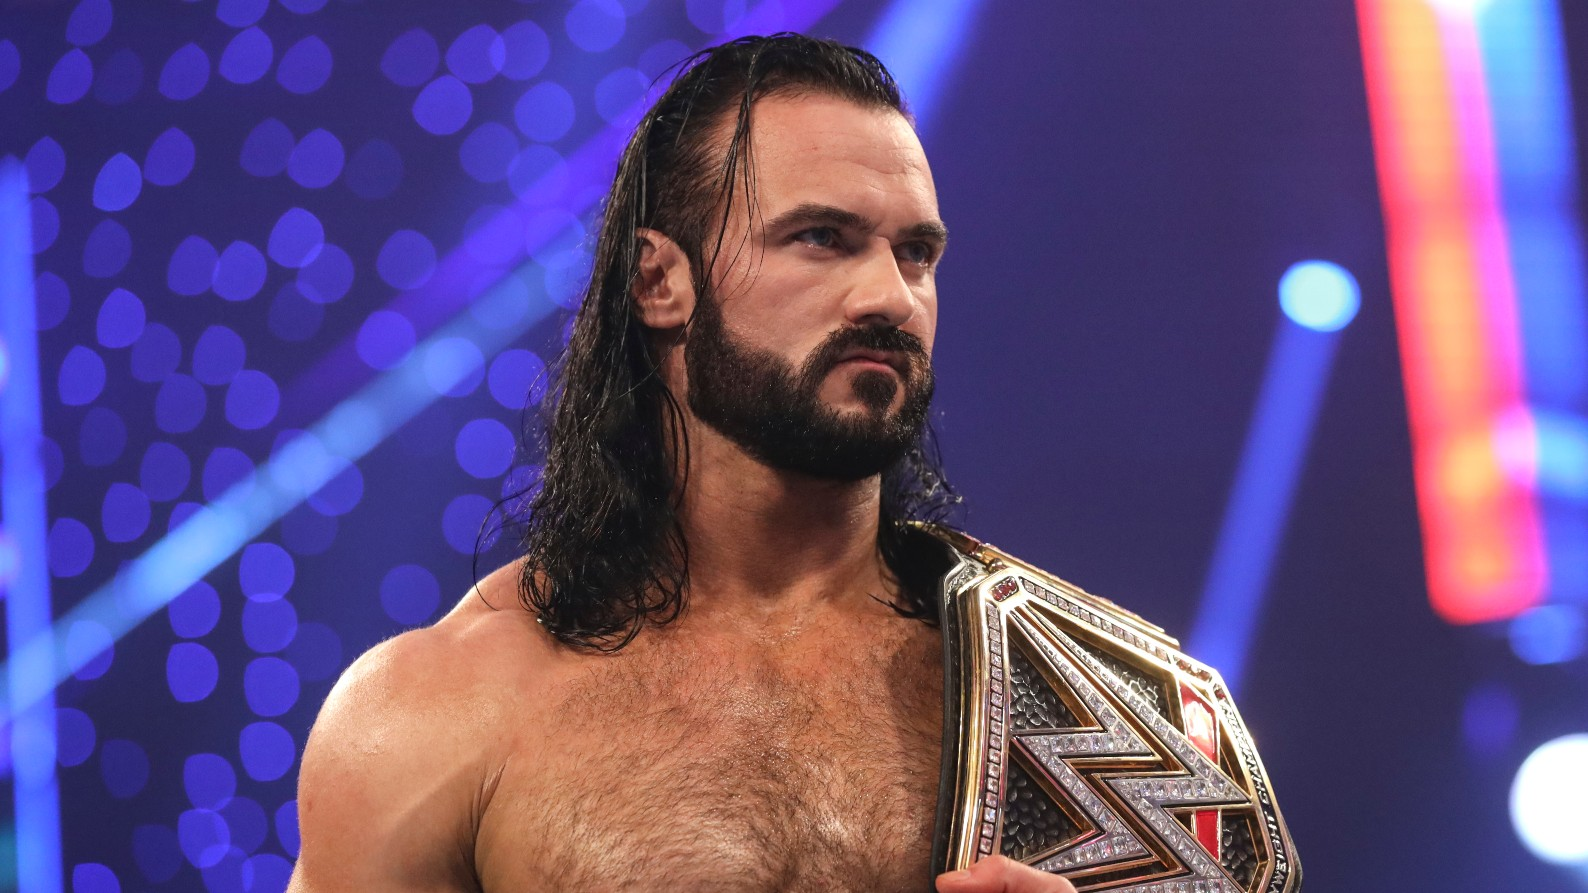 WWE Champion Drew McIntyre tests positive for COVID-19 - THE SPORTS ROOM